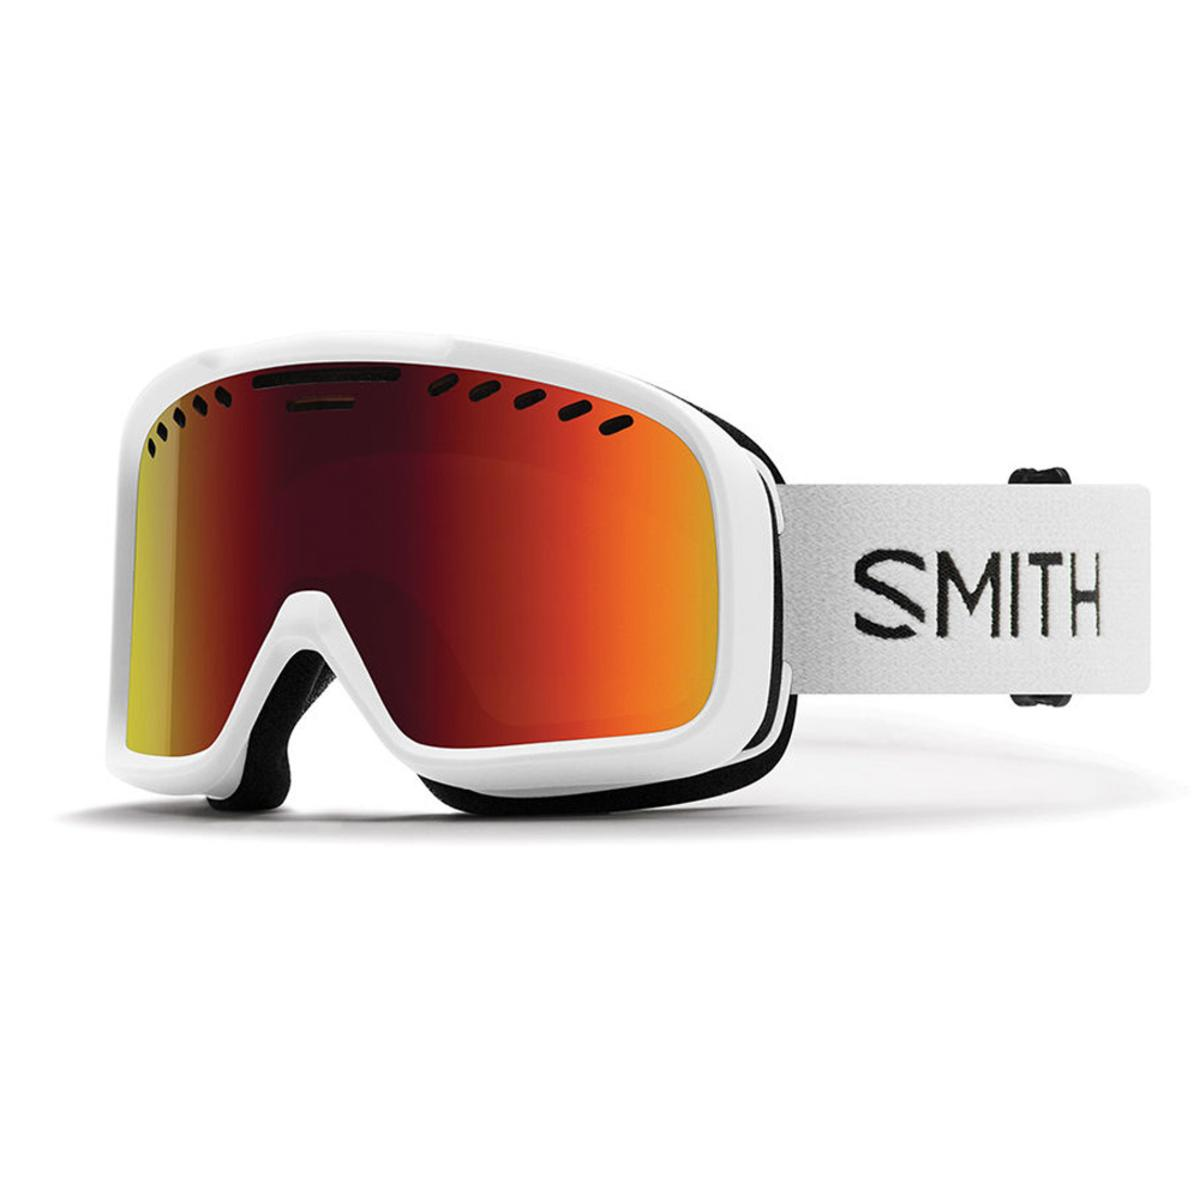 1708eb32398bd Smith Optics Project Snow Goggles - White Frame - The Warming Store